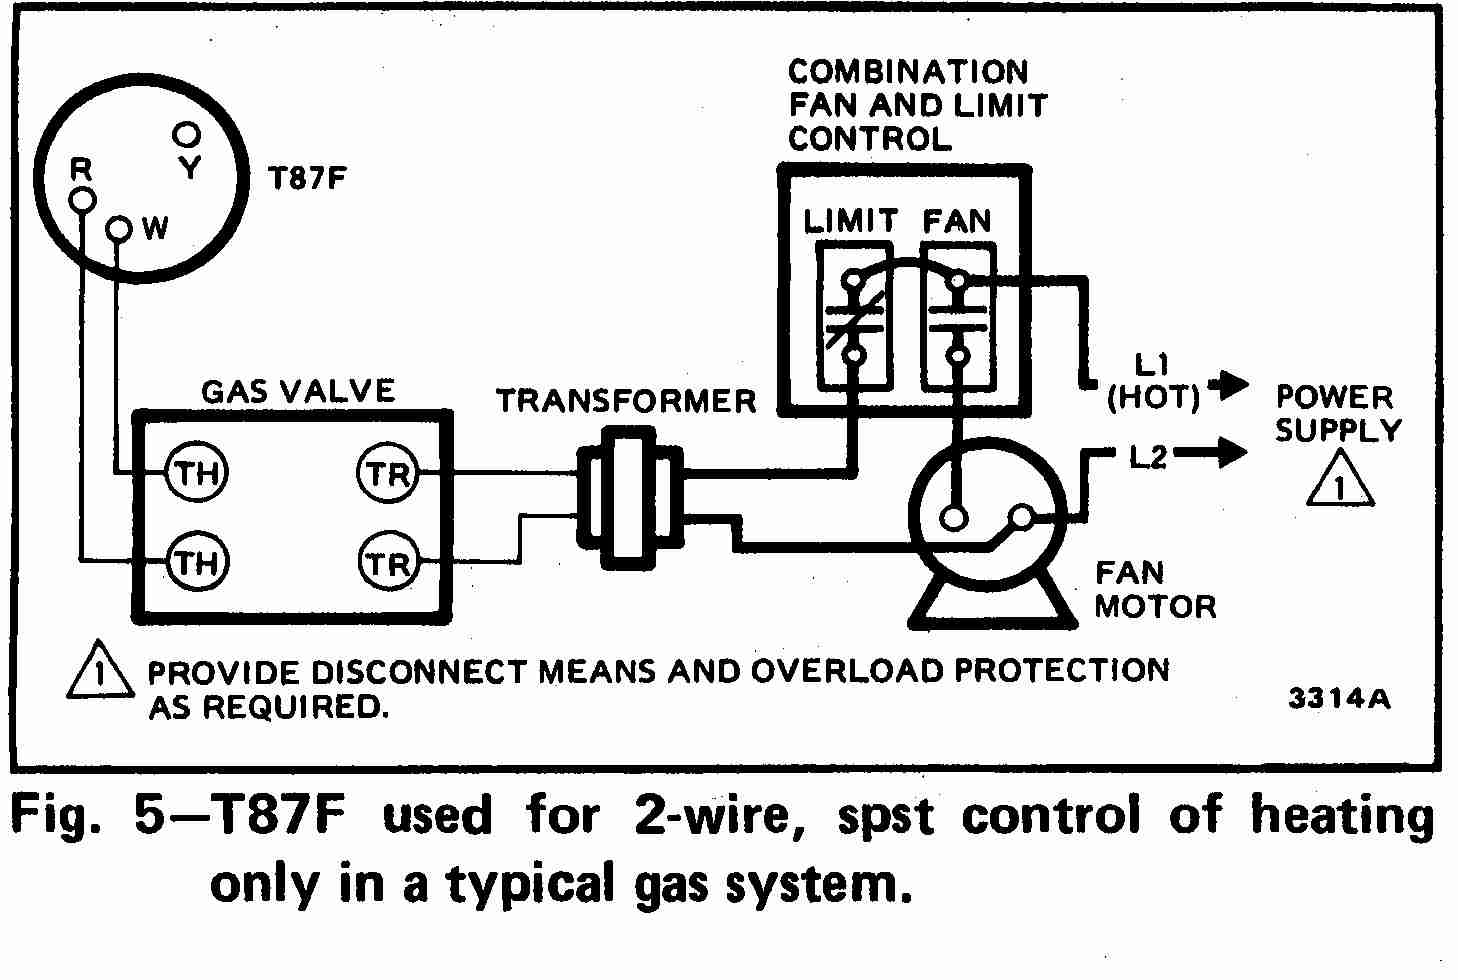 TT_T87F_0002_2Wg_DJF room thermostat wiring diagrams for hvac systems motor space heater wiring diagram at gsmx.co